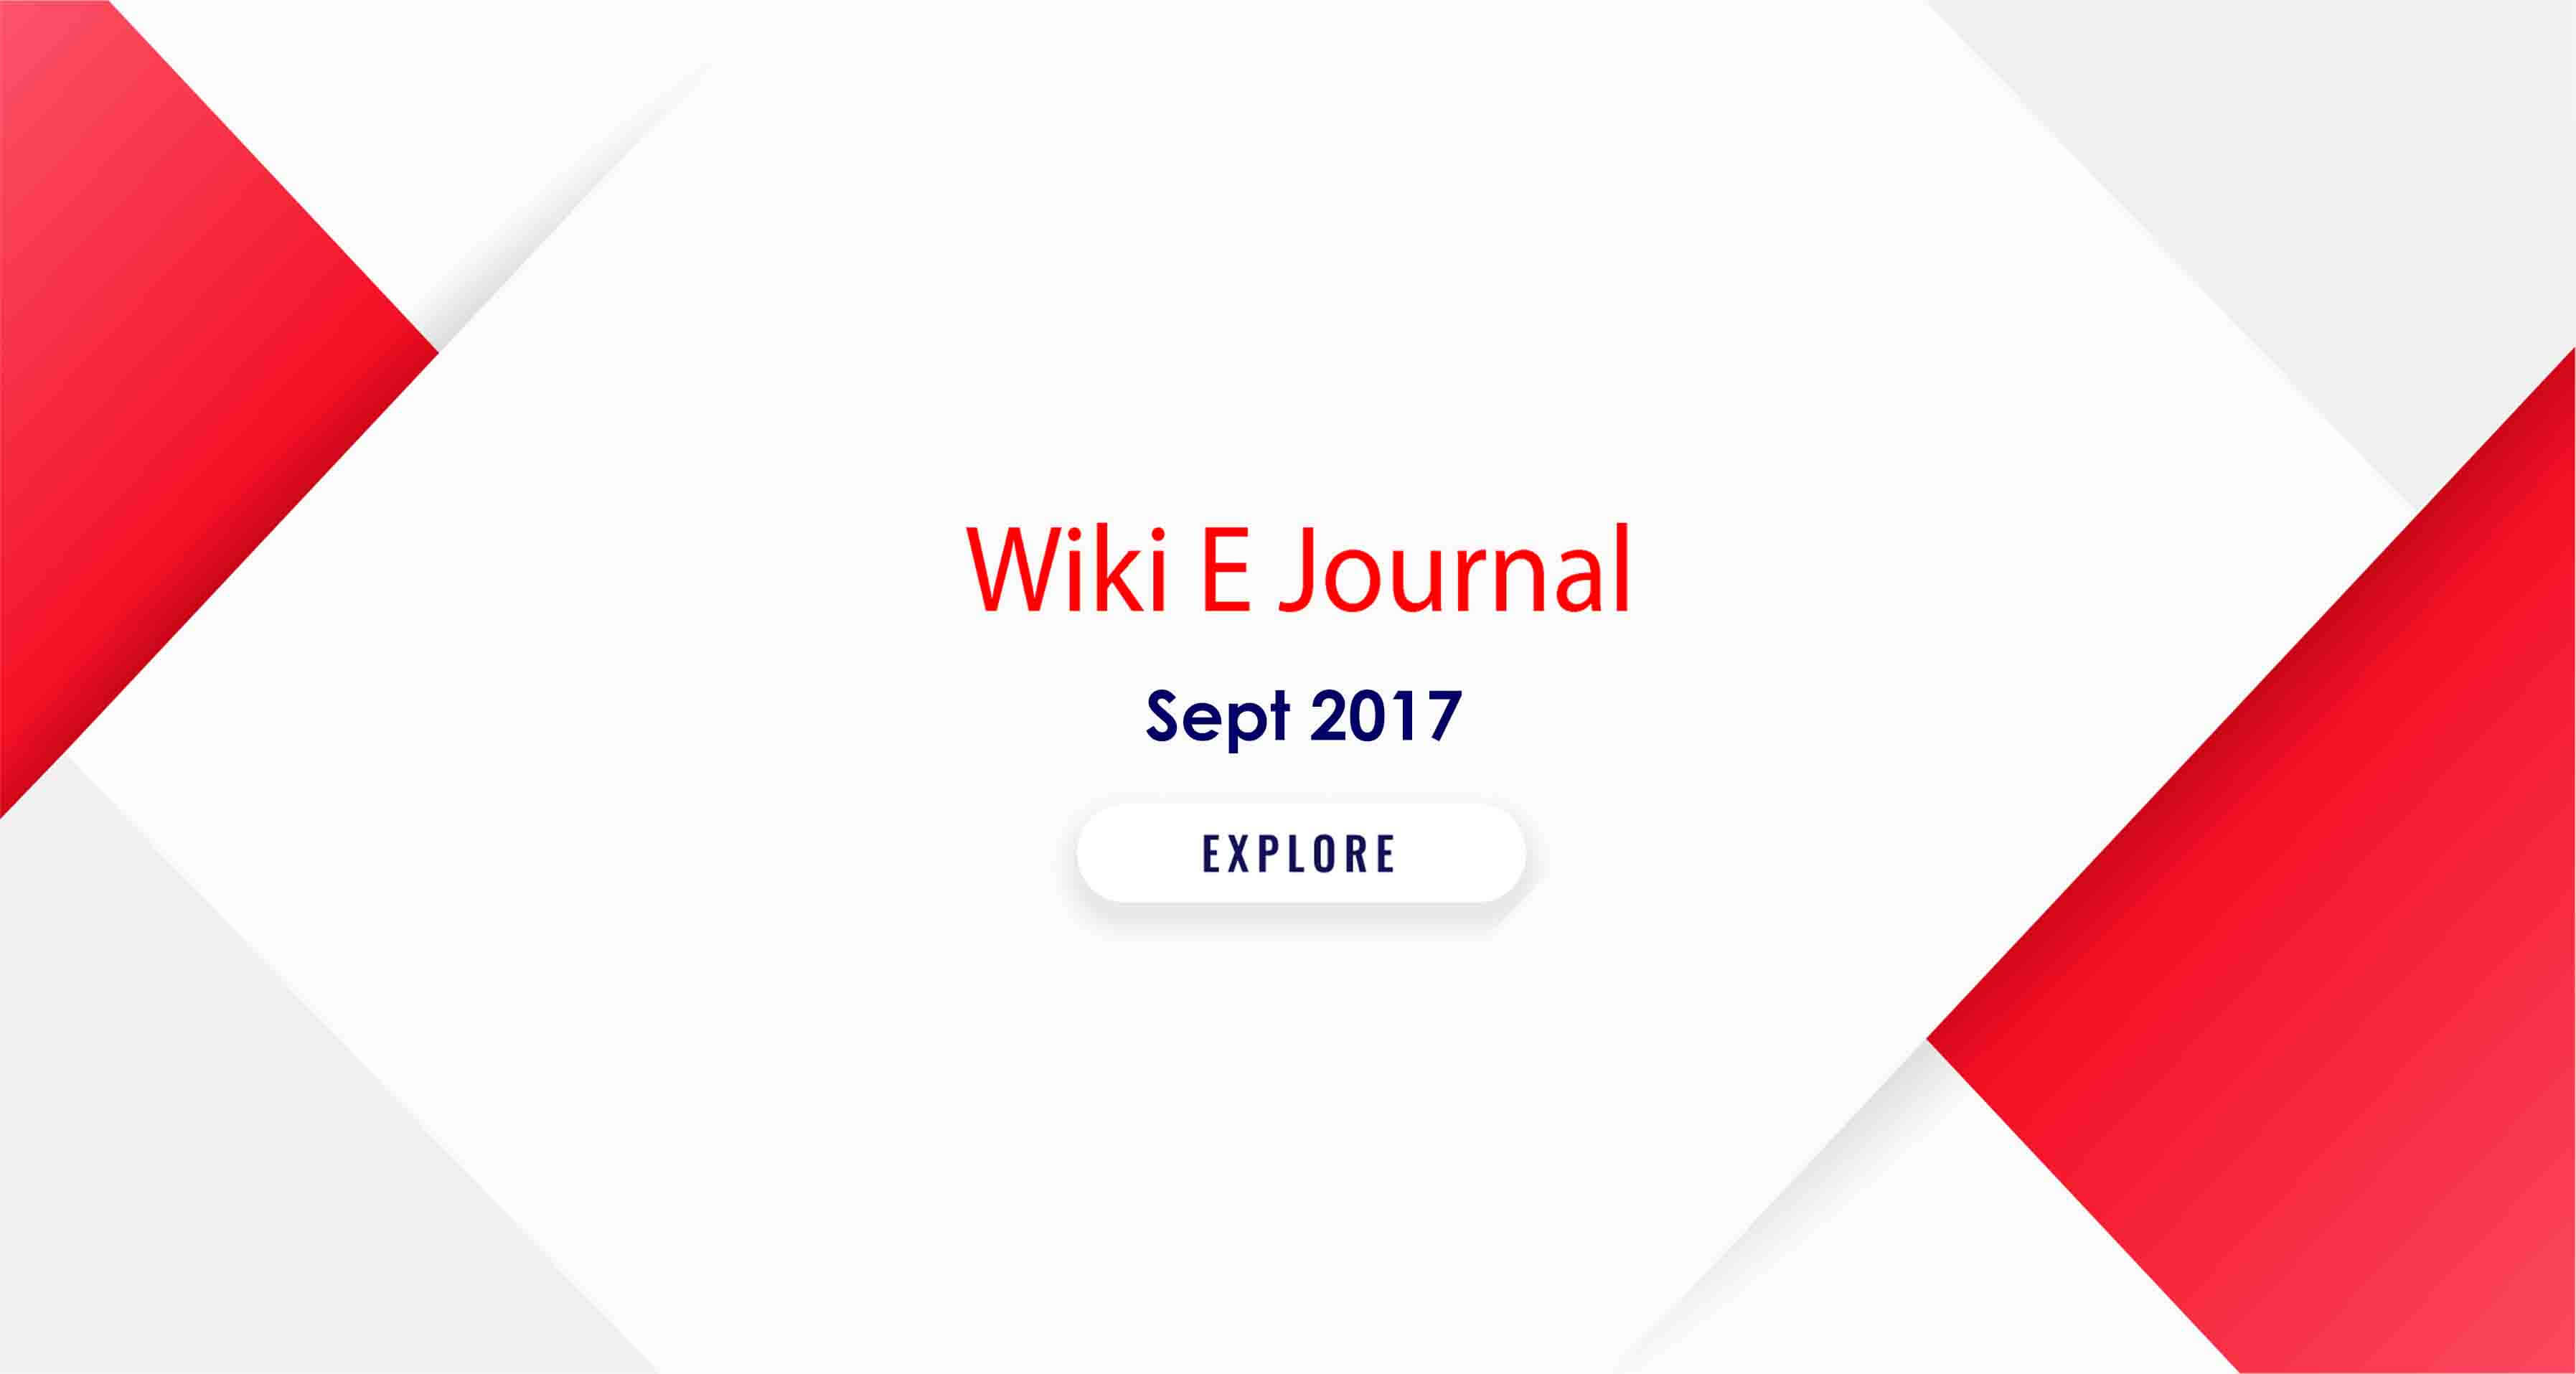 SBS WIKI E Journal Sept 2017